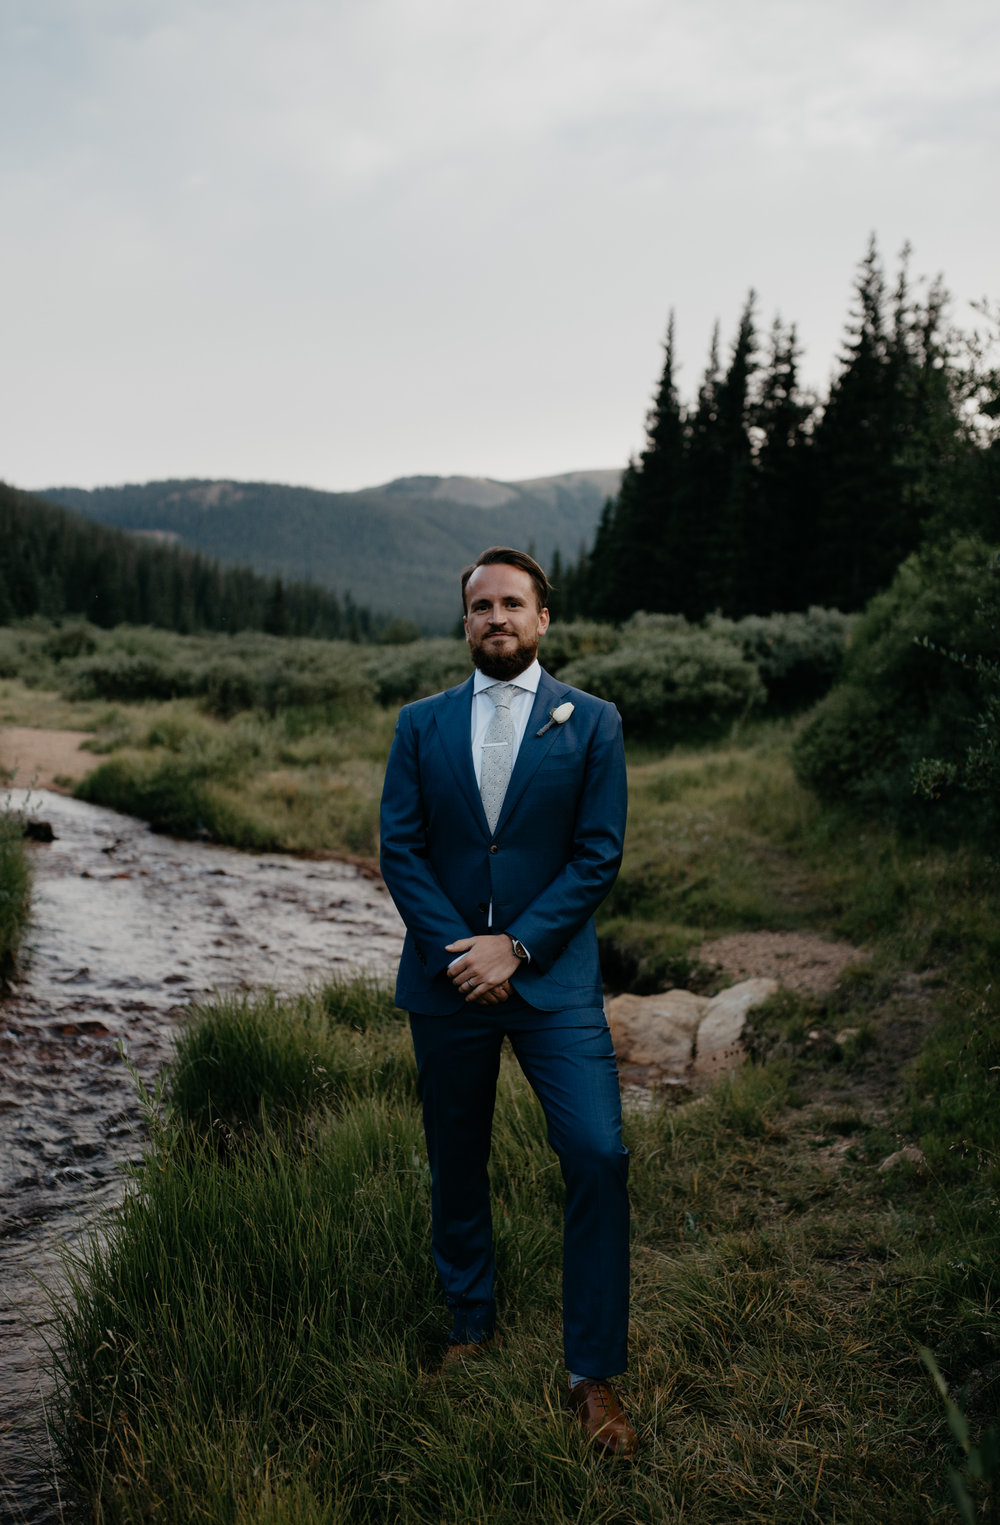 Portrait of groom by Colorado elopement photographer, Alyssa Reinhold.